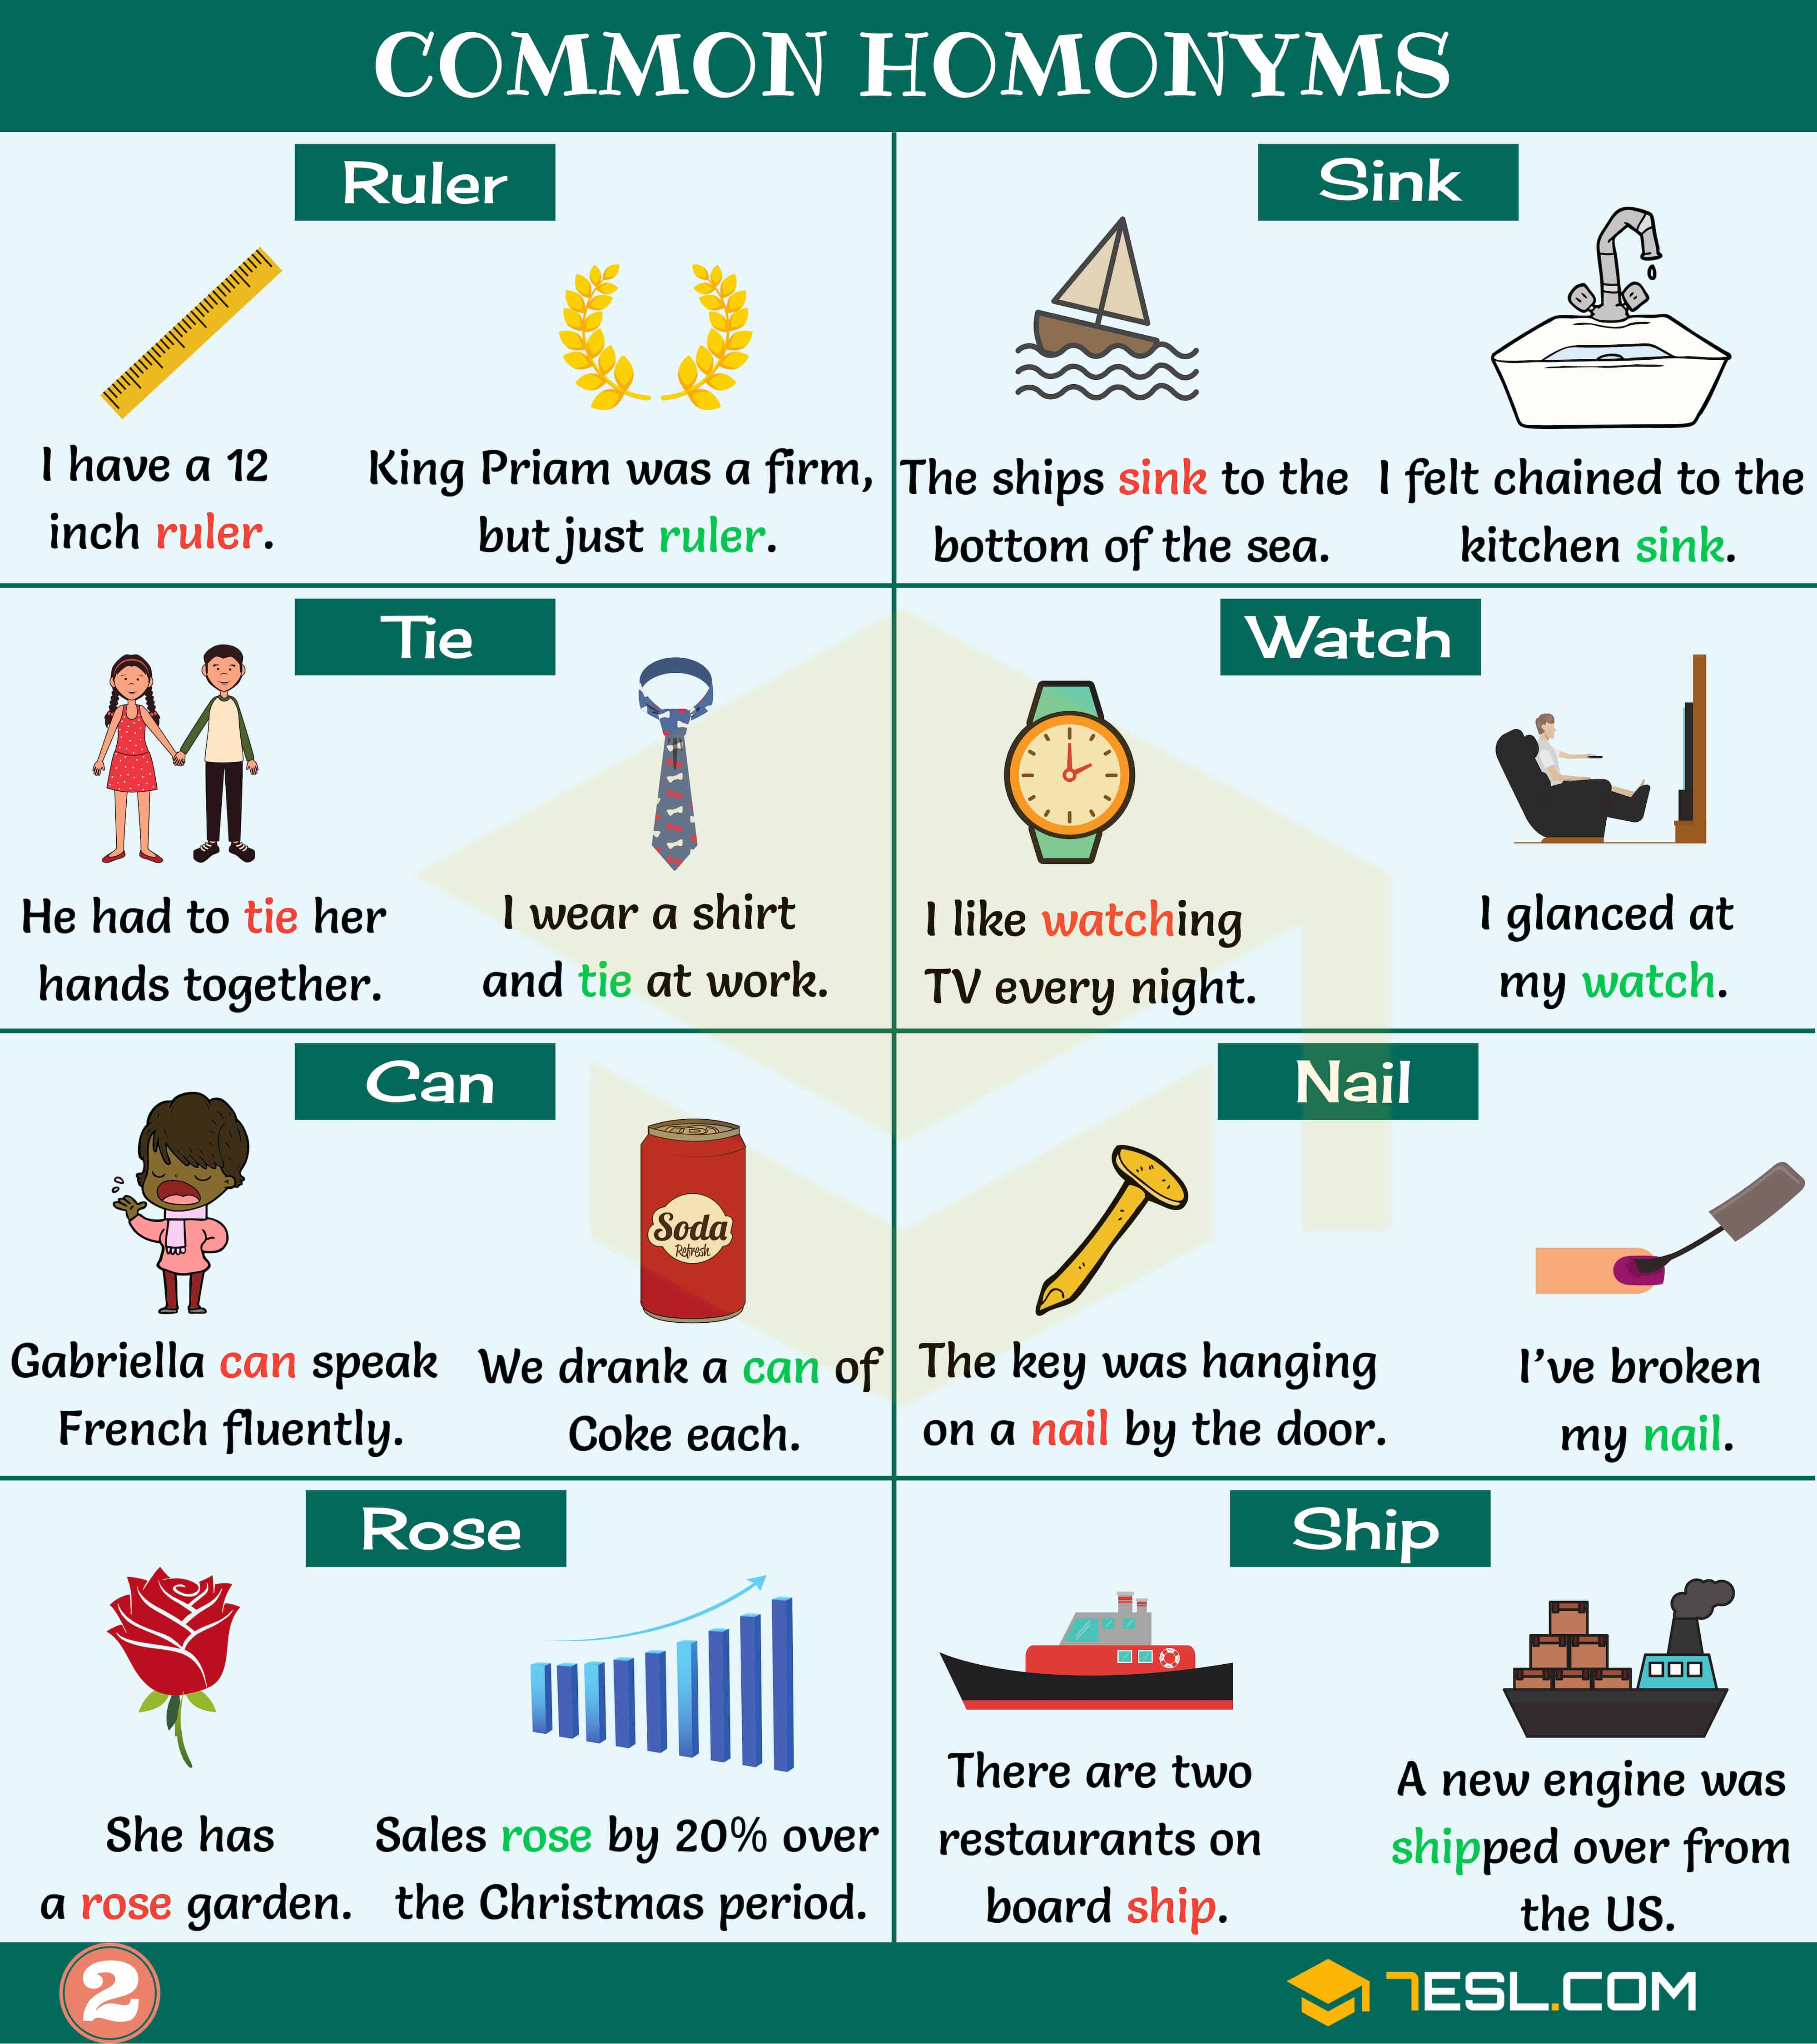 Homonyms Examples | Homonyms List | Image 1